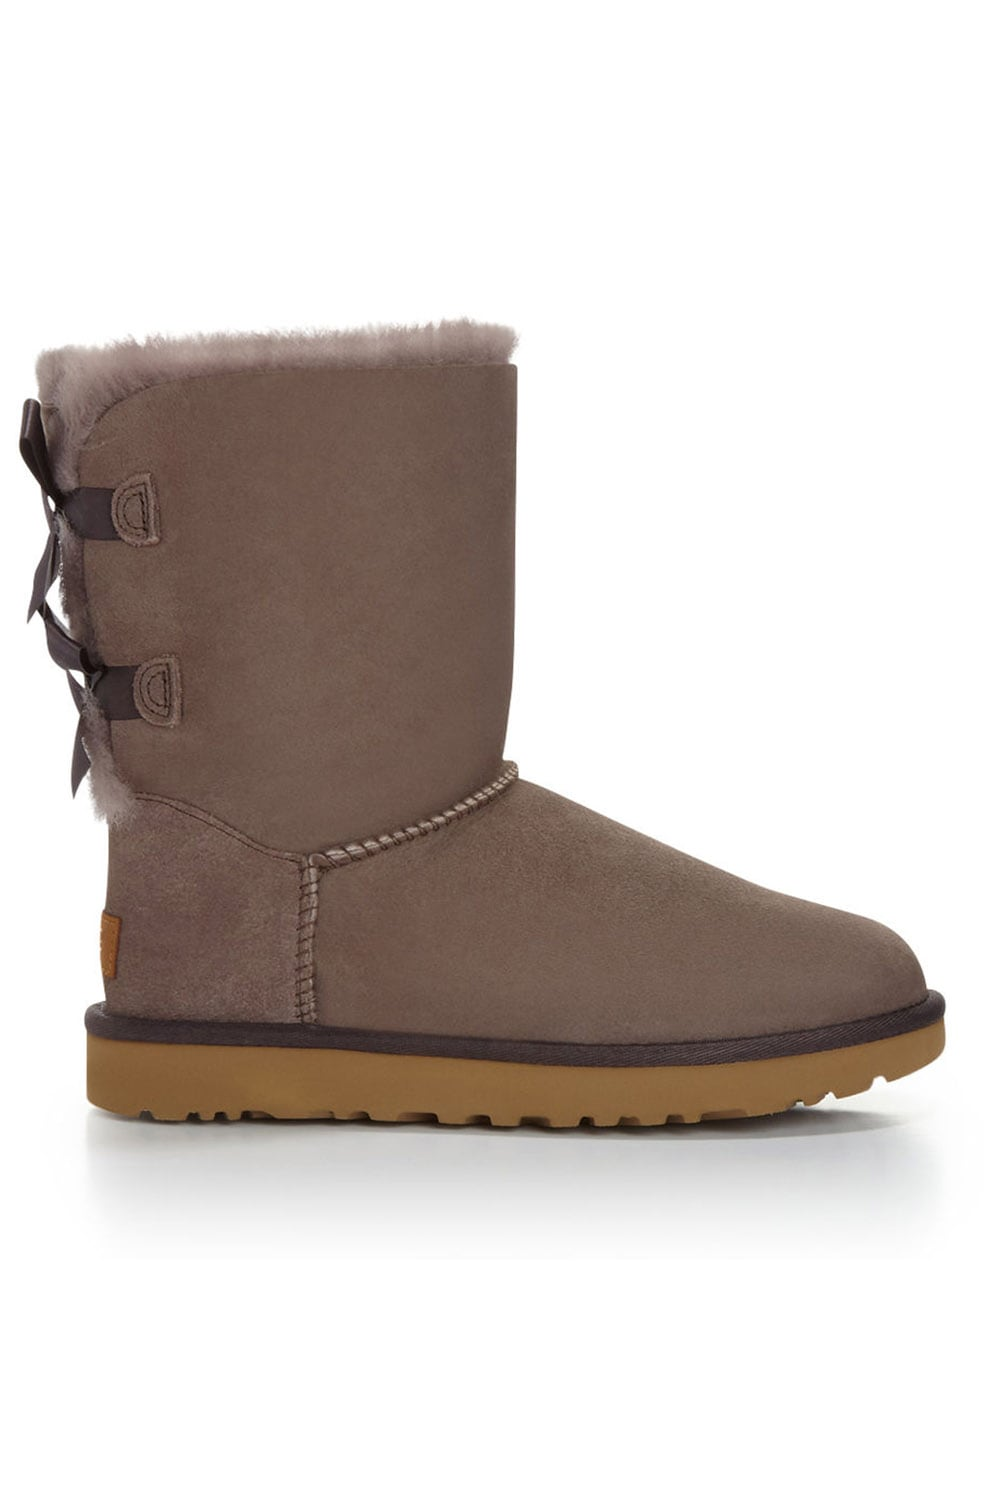 ugg slippers brown thomas, included Rita Ora, who had on vibrant blue checked House of Holland boots that featured cherry graugg clabic outlet \' AND SLEEP(3) oRDeR BY phics. While the collab is due for a final release via the Kaws online store, that won't be easy to get, either.